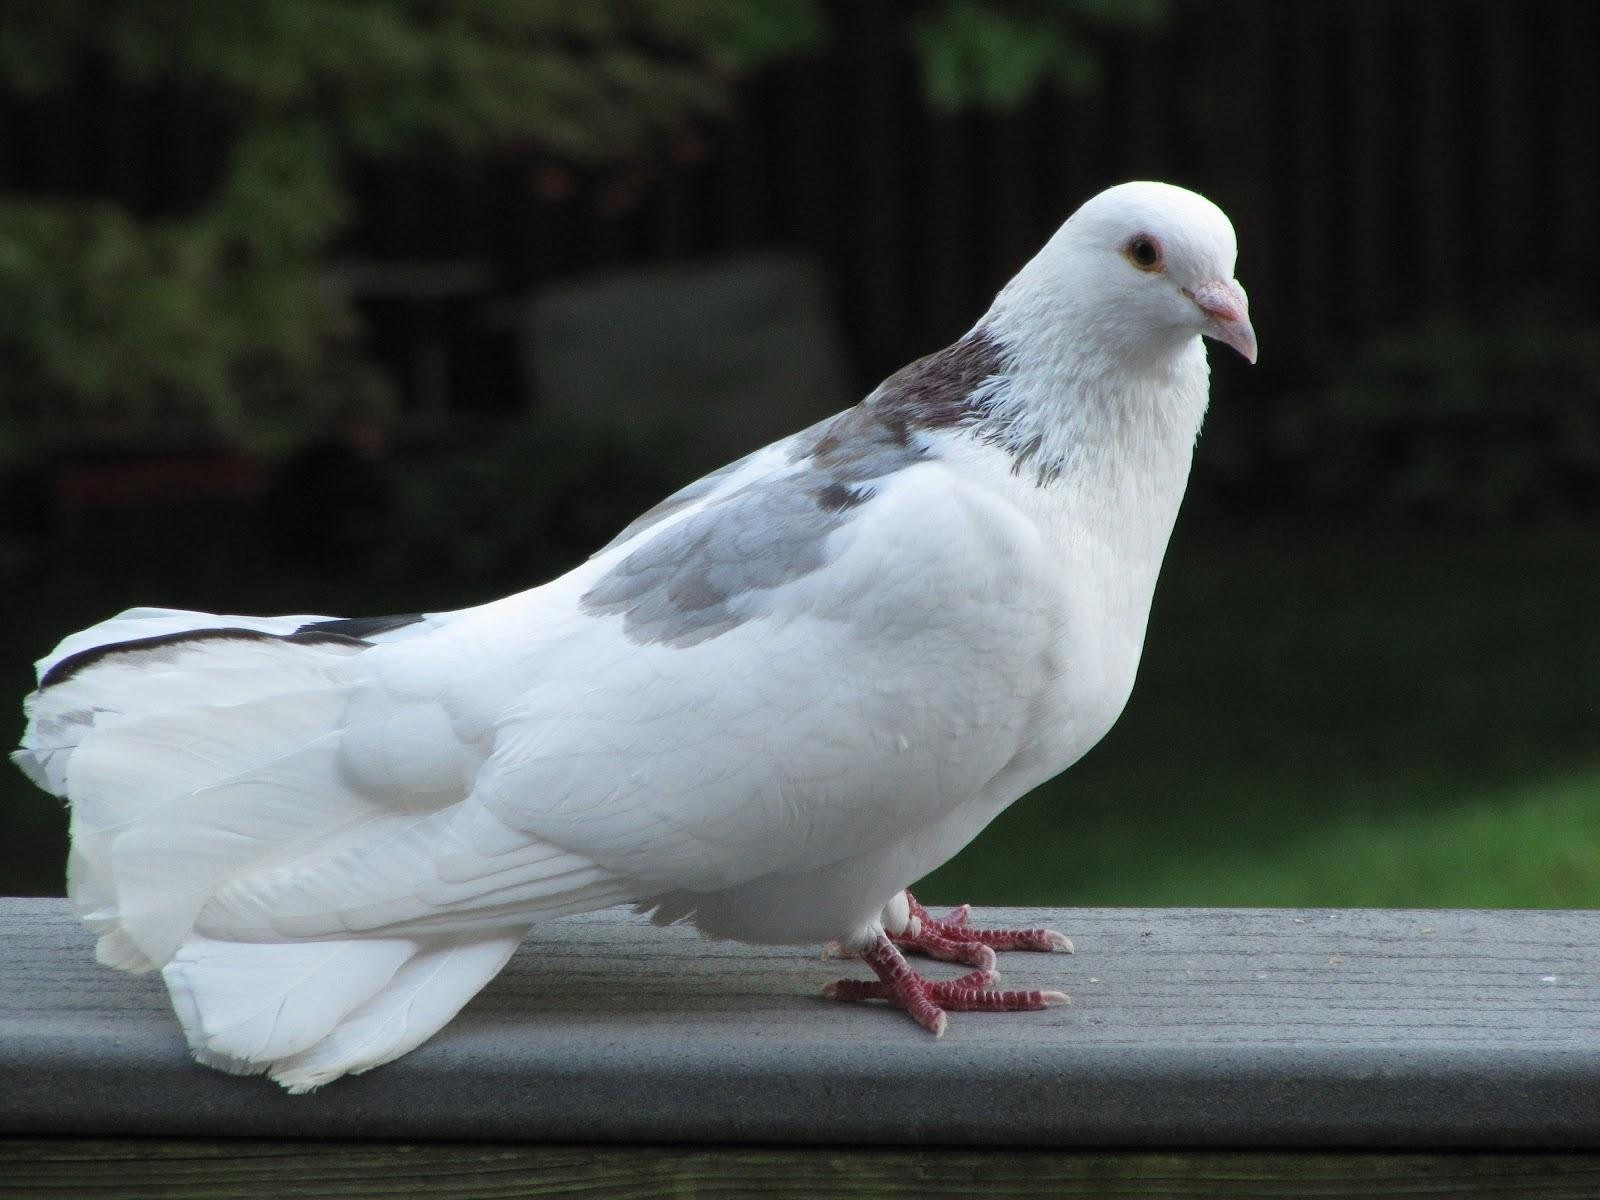 White Pigeon Wallpaper   Beautiful Pigeon Wallpapers Plus Themepack 1600x1200